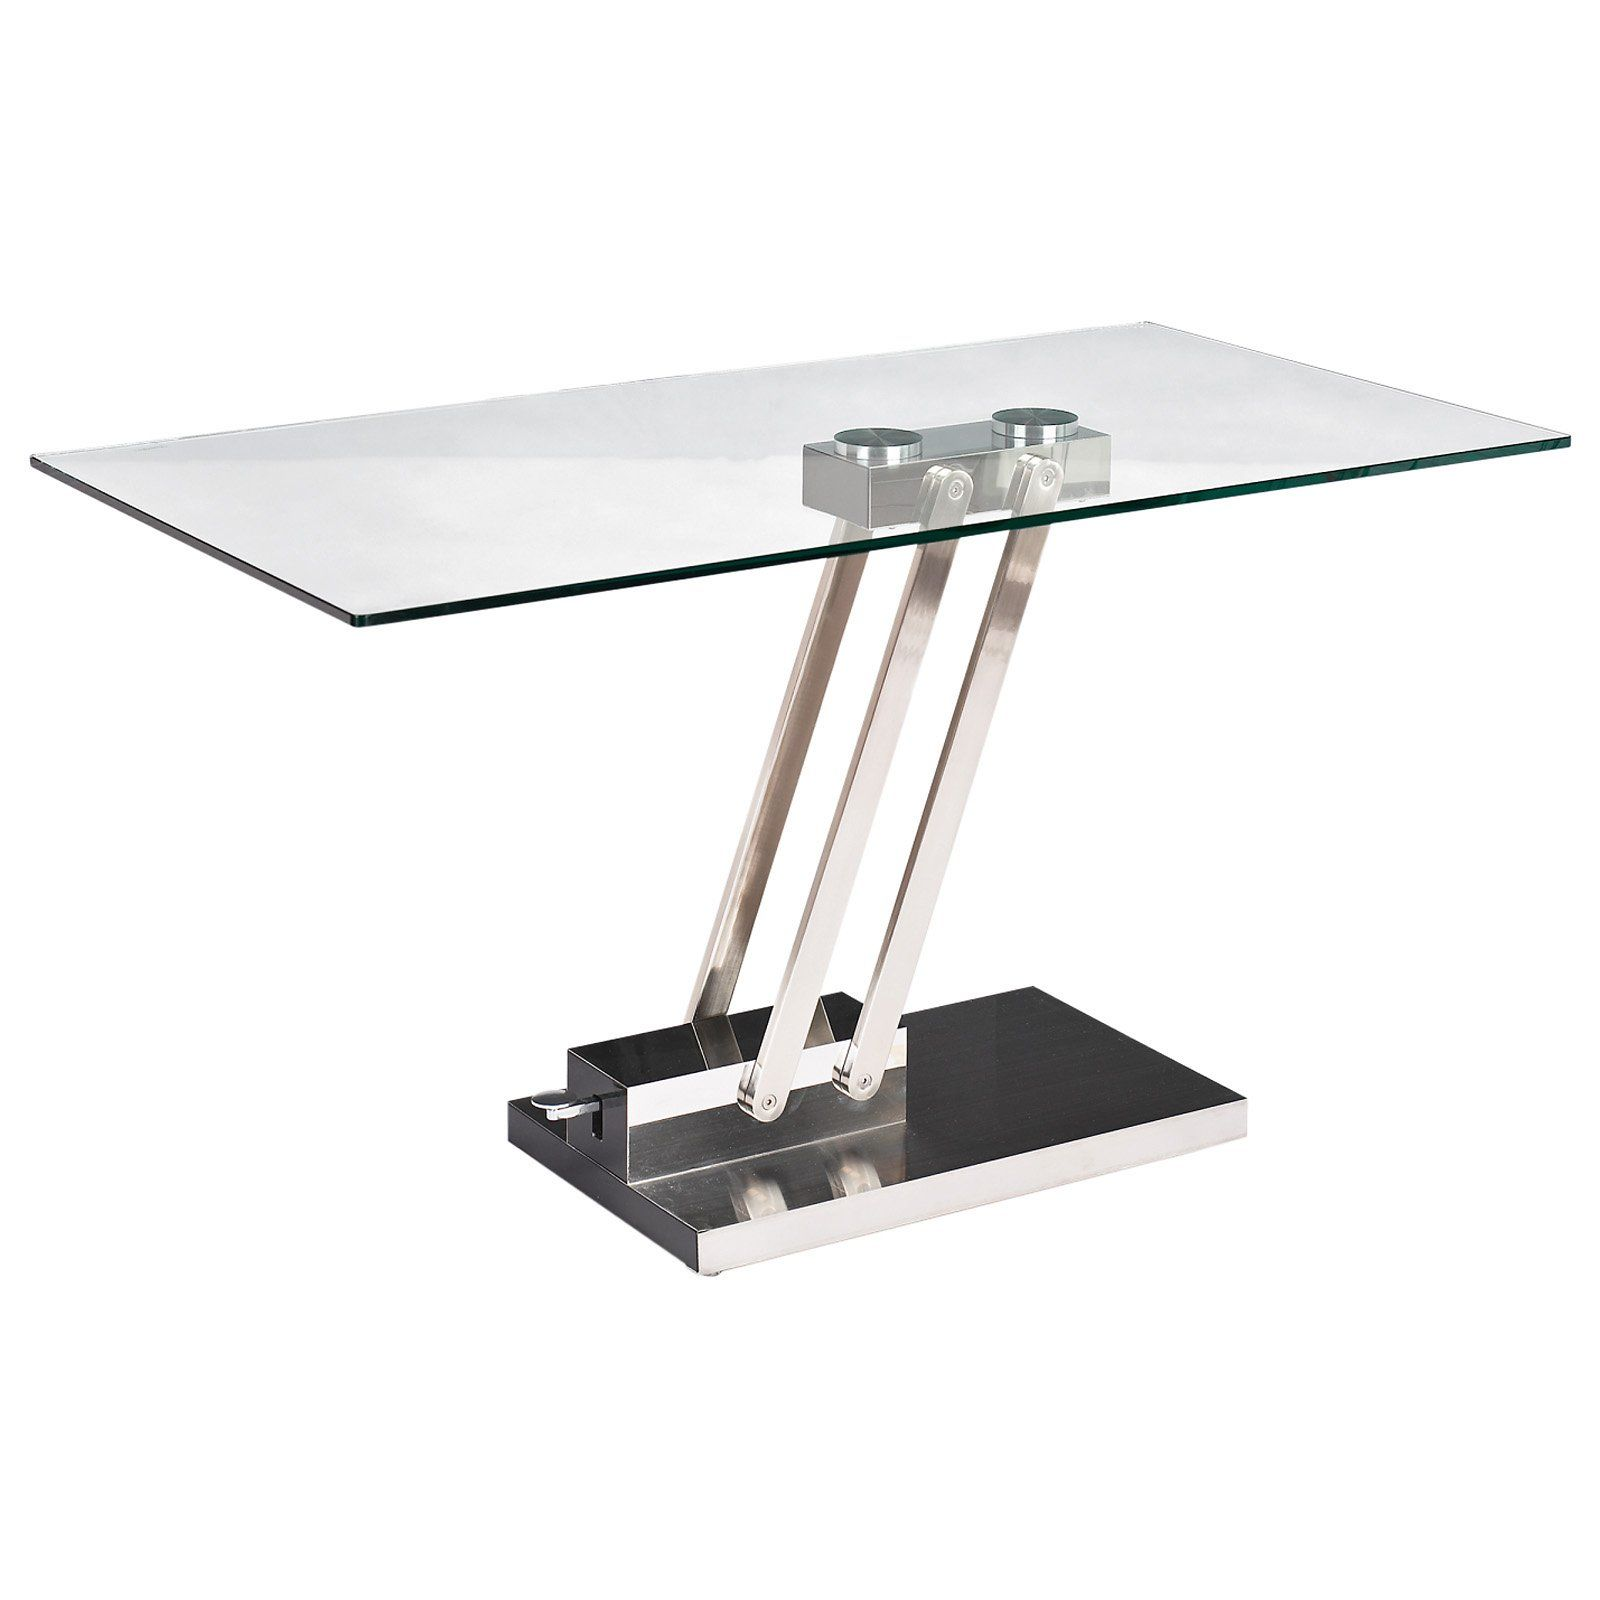 Chintaly Zilt Adjustable Height Coffee Table Glass Coffee Table Decor Adjustable Height Coffee Table Coffee Table Height [ 1600 x 1600 Pixel ]